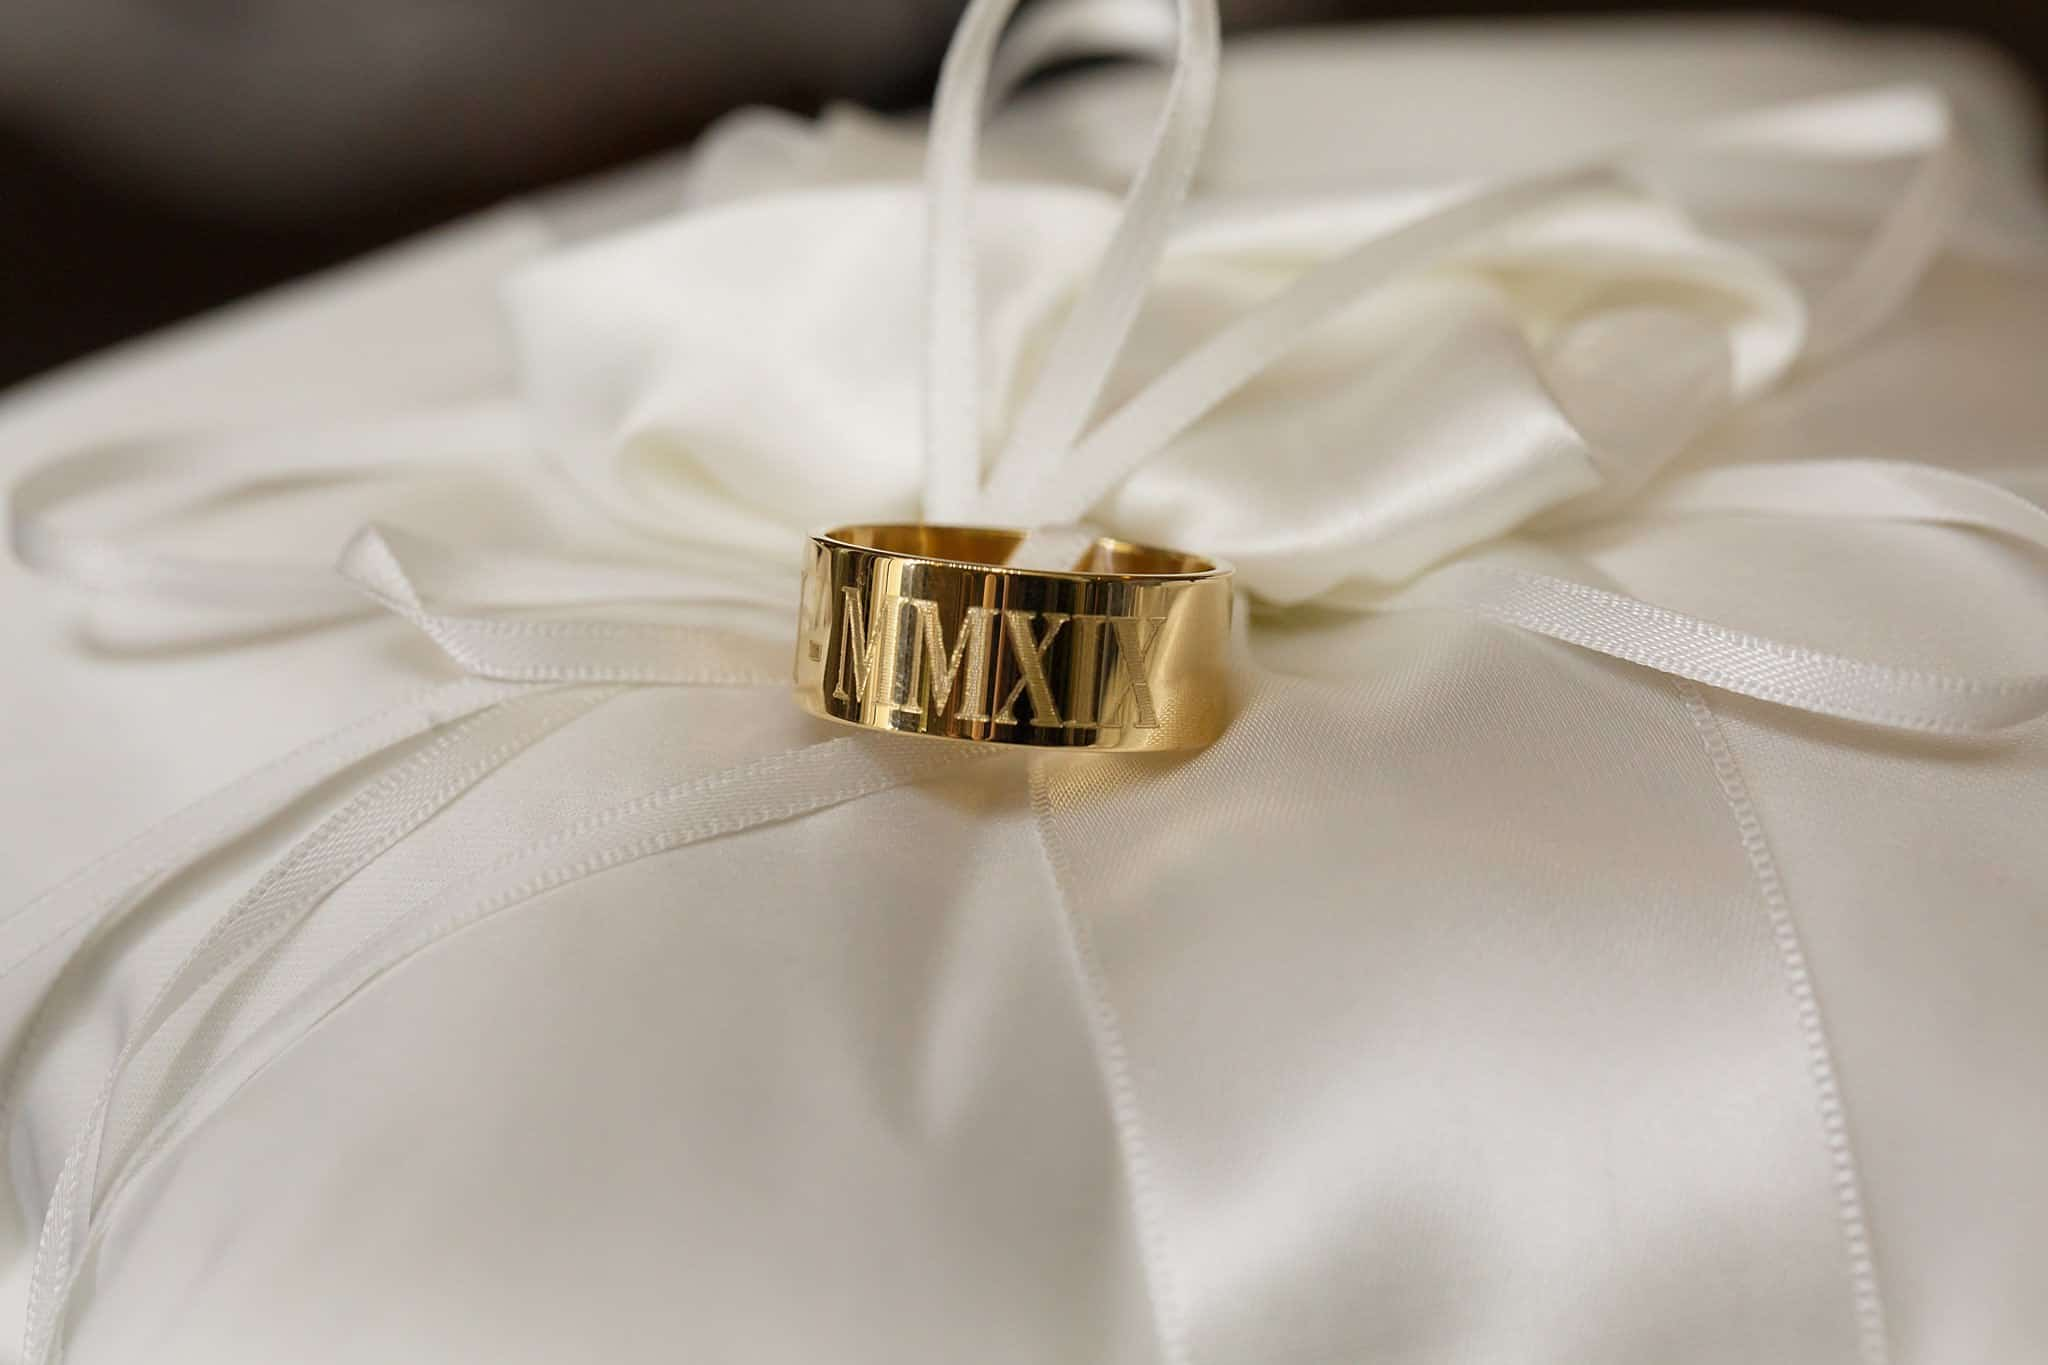 Gold Grooms ring on satin white ring bearer pillow inscribed with Roman Numerals for 2019